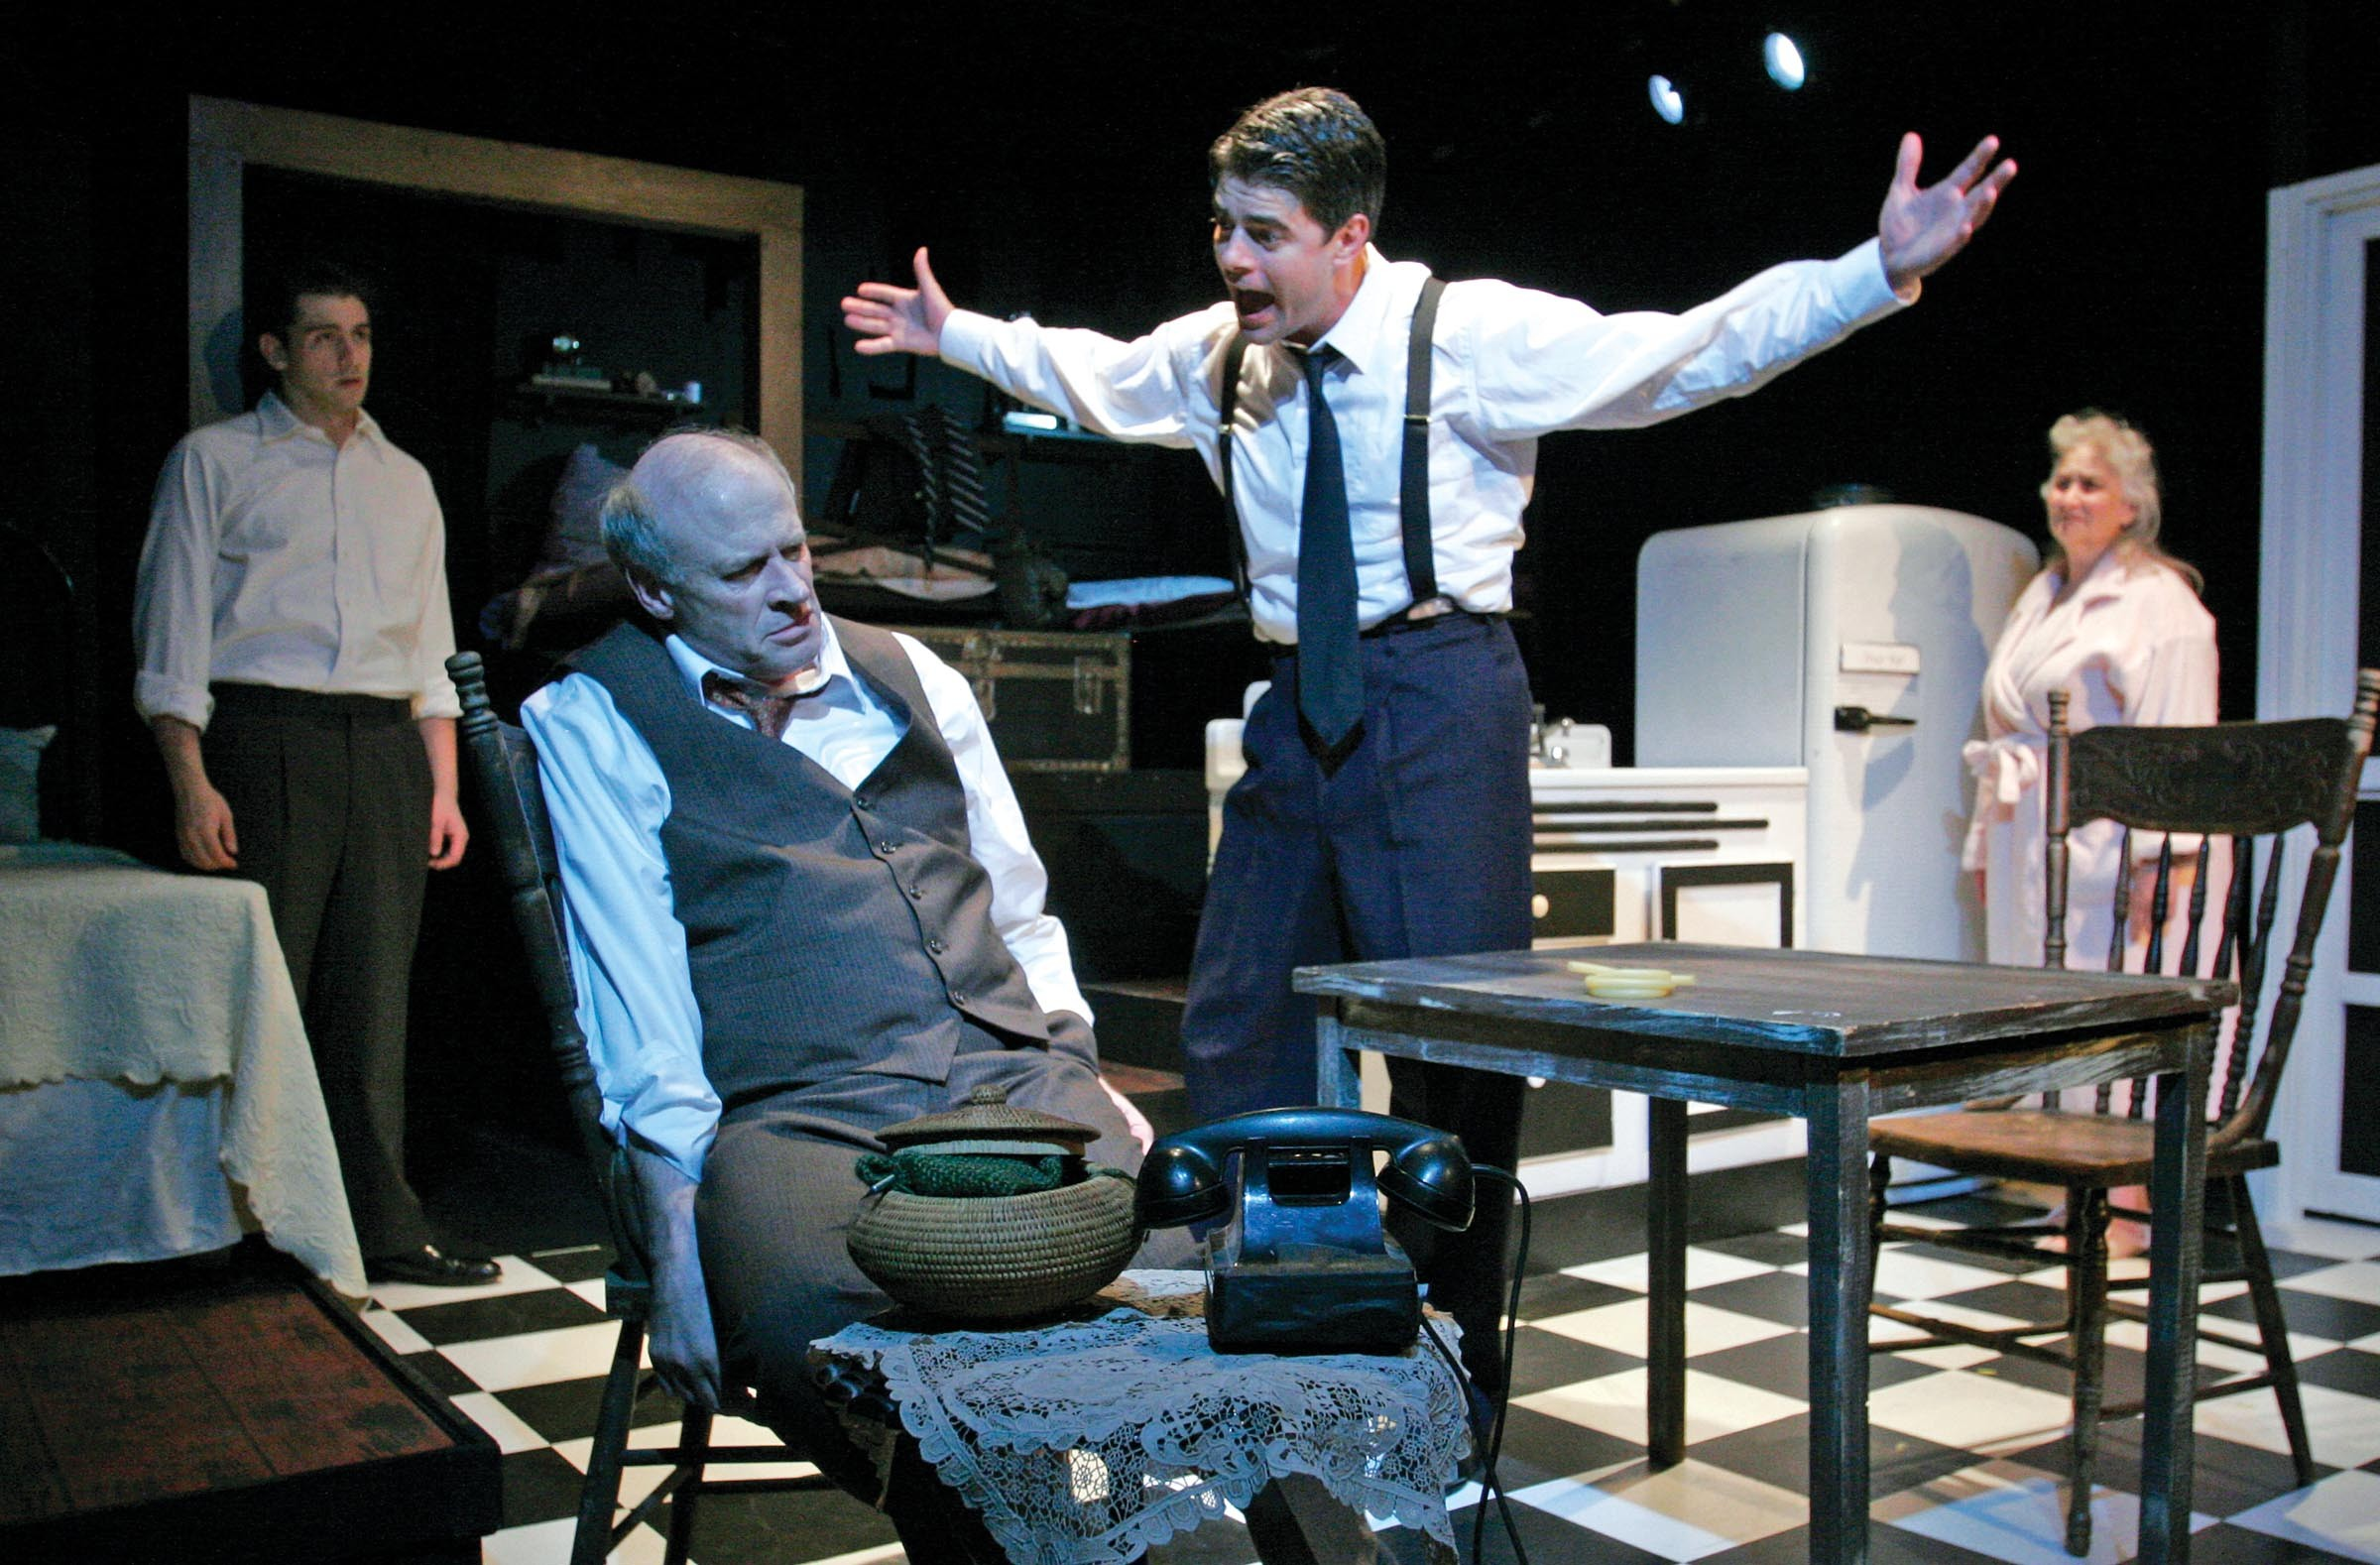 """The Firehouse Theatre Project's most recent production, """"Death of a Salesman,"""" featured Joe Inscoe as Willy Loman, seated, and Adrian Rieder as Biff, standing — both of whom are protesting the theater's decision to dismiss Carol Piersol. - FIREHOUSE THEATRE"""